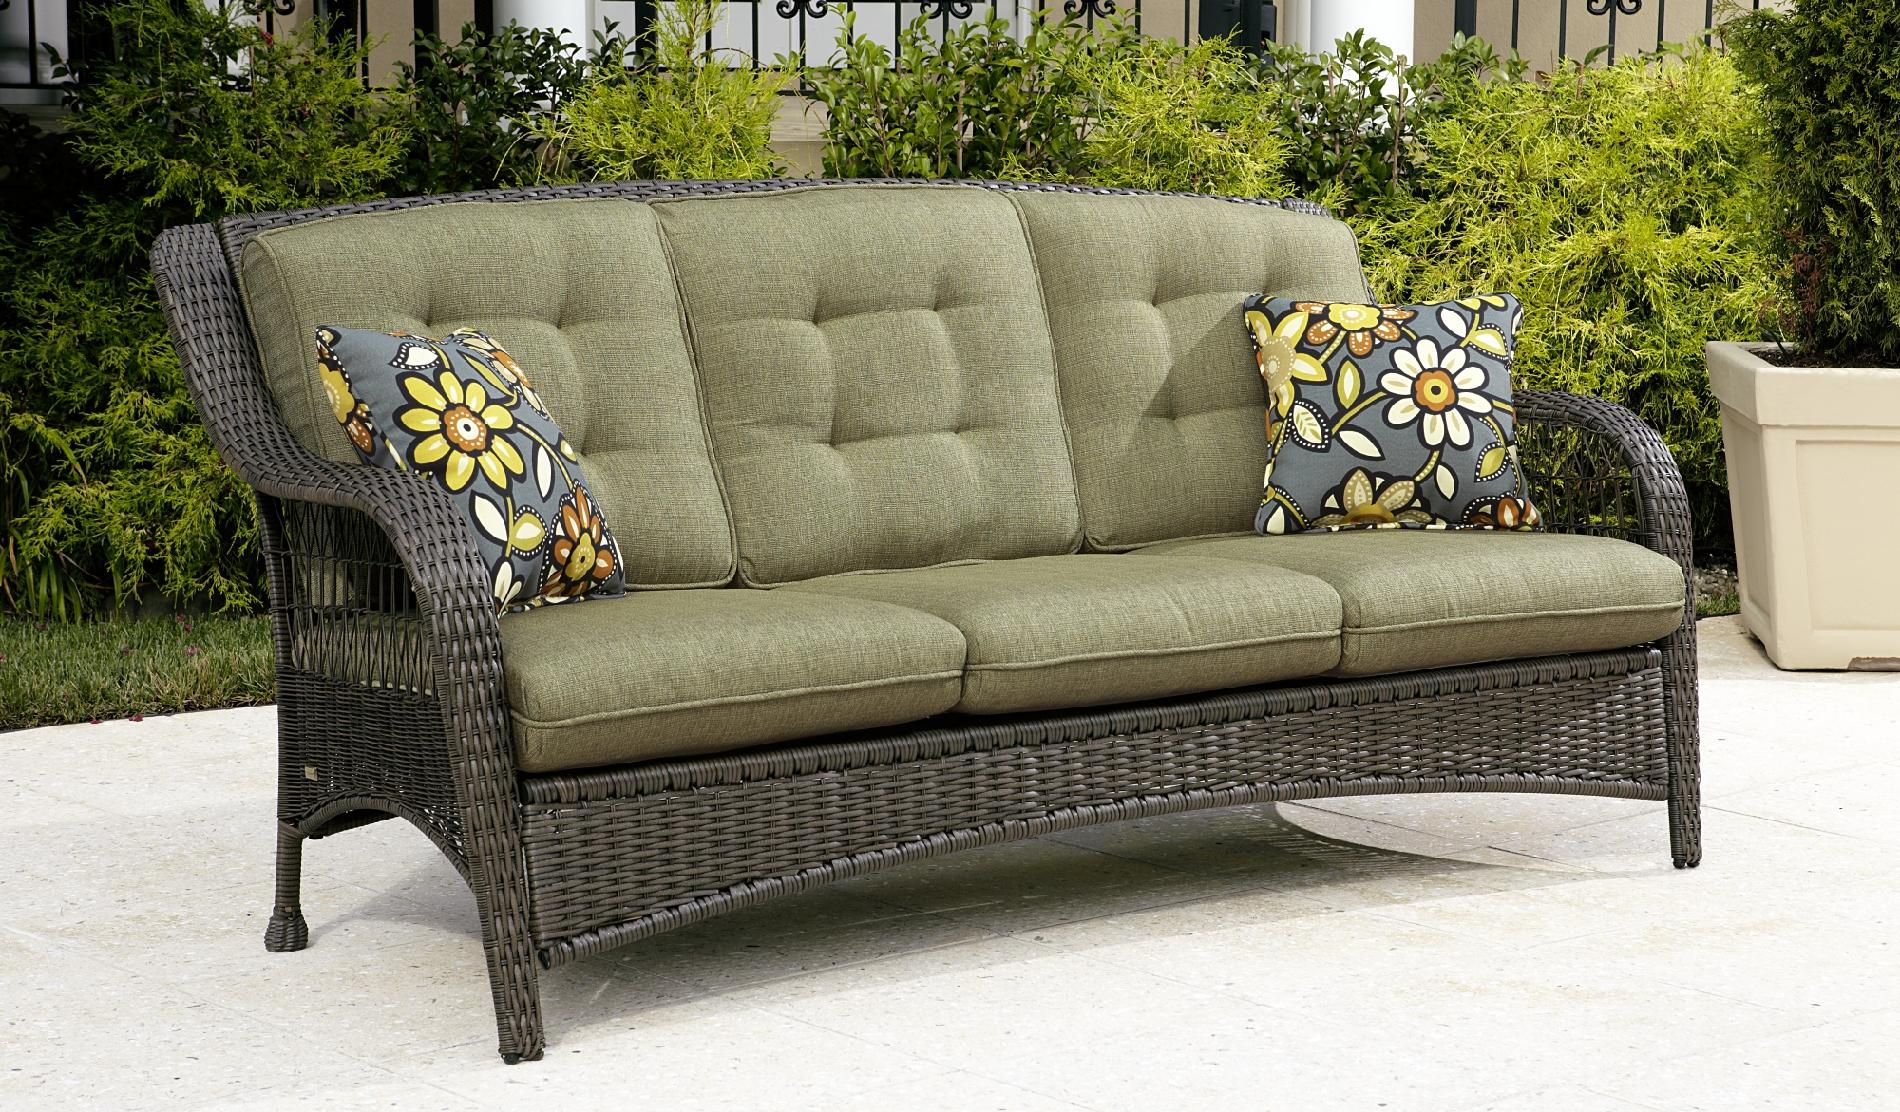 Outdoor Couch 3 Seat Patio Sofa Sofa Lovely 3 Seat Patio Home Decorators